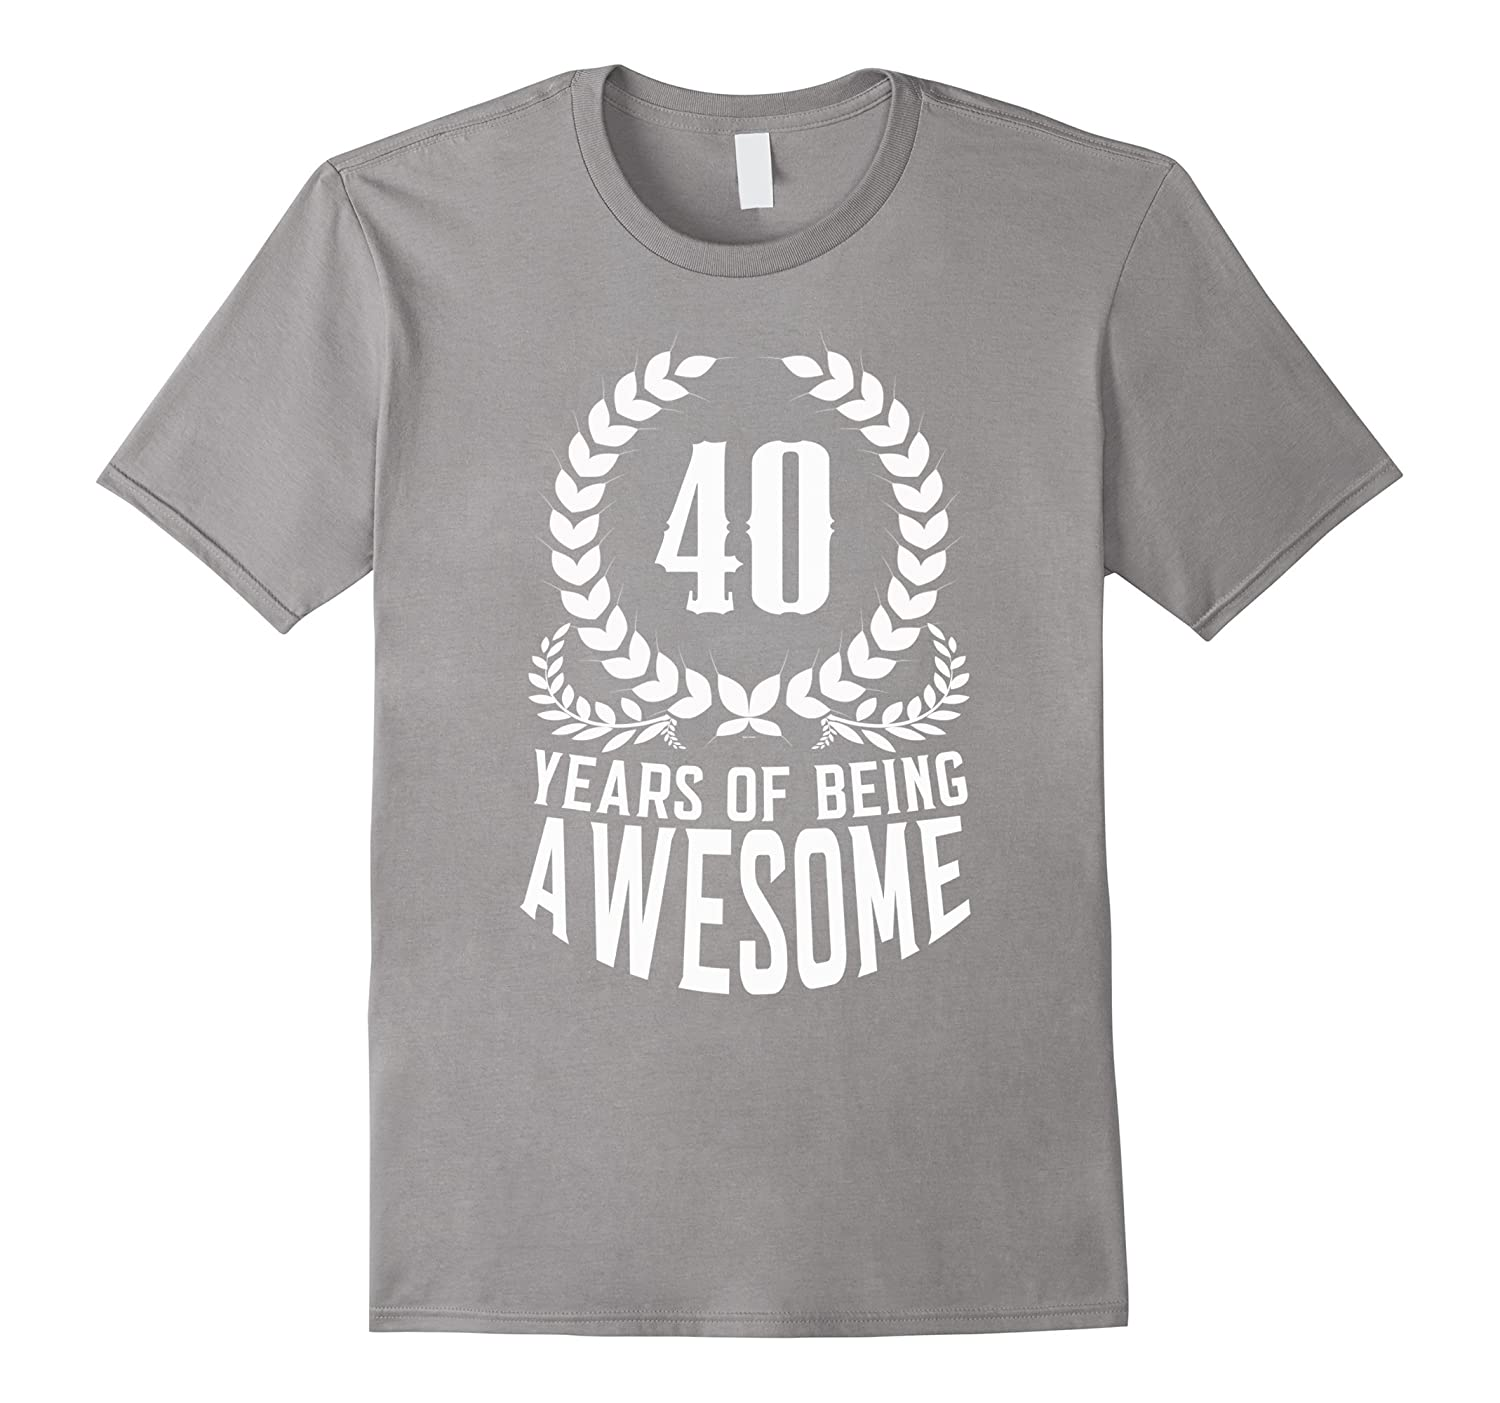 40 years of being awesome 1977 birthday gifts for woman men-TD